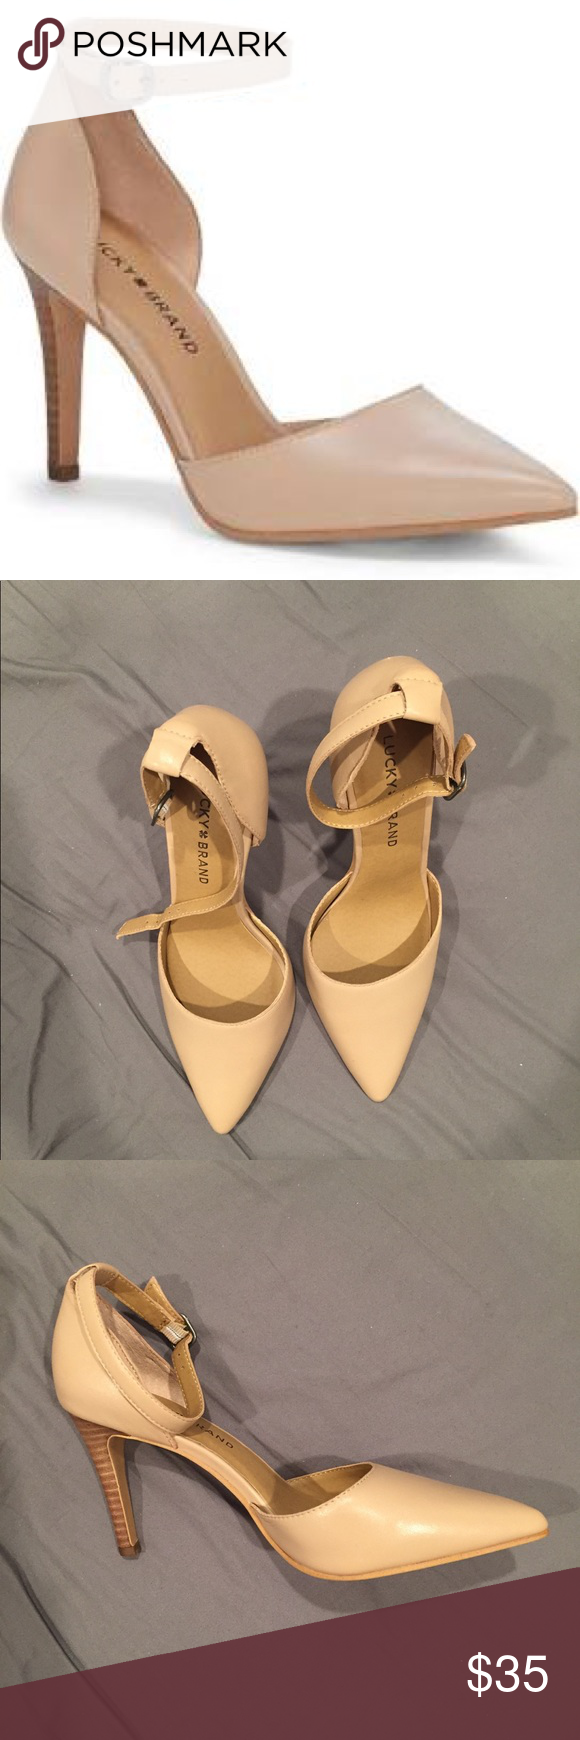 8724576caf Lucky Brand Leather Pumps, 6.5M (new with tags) Lucky Brand Tukko d'orsay  ankle strap pump in nude, size 6.5M. Leather upper, man made lining and  sole.